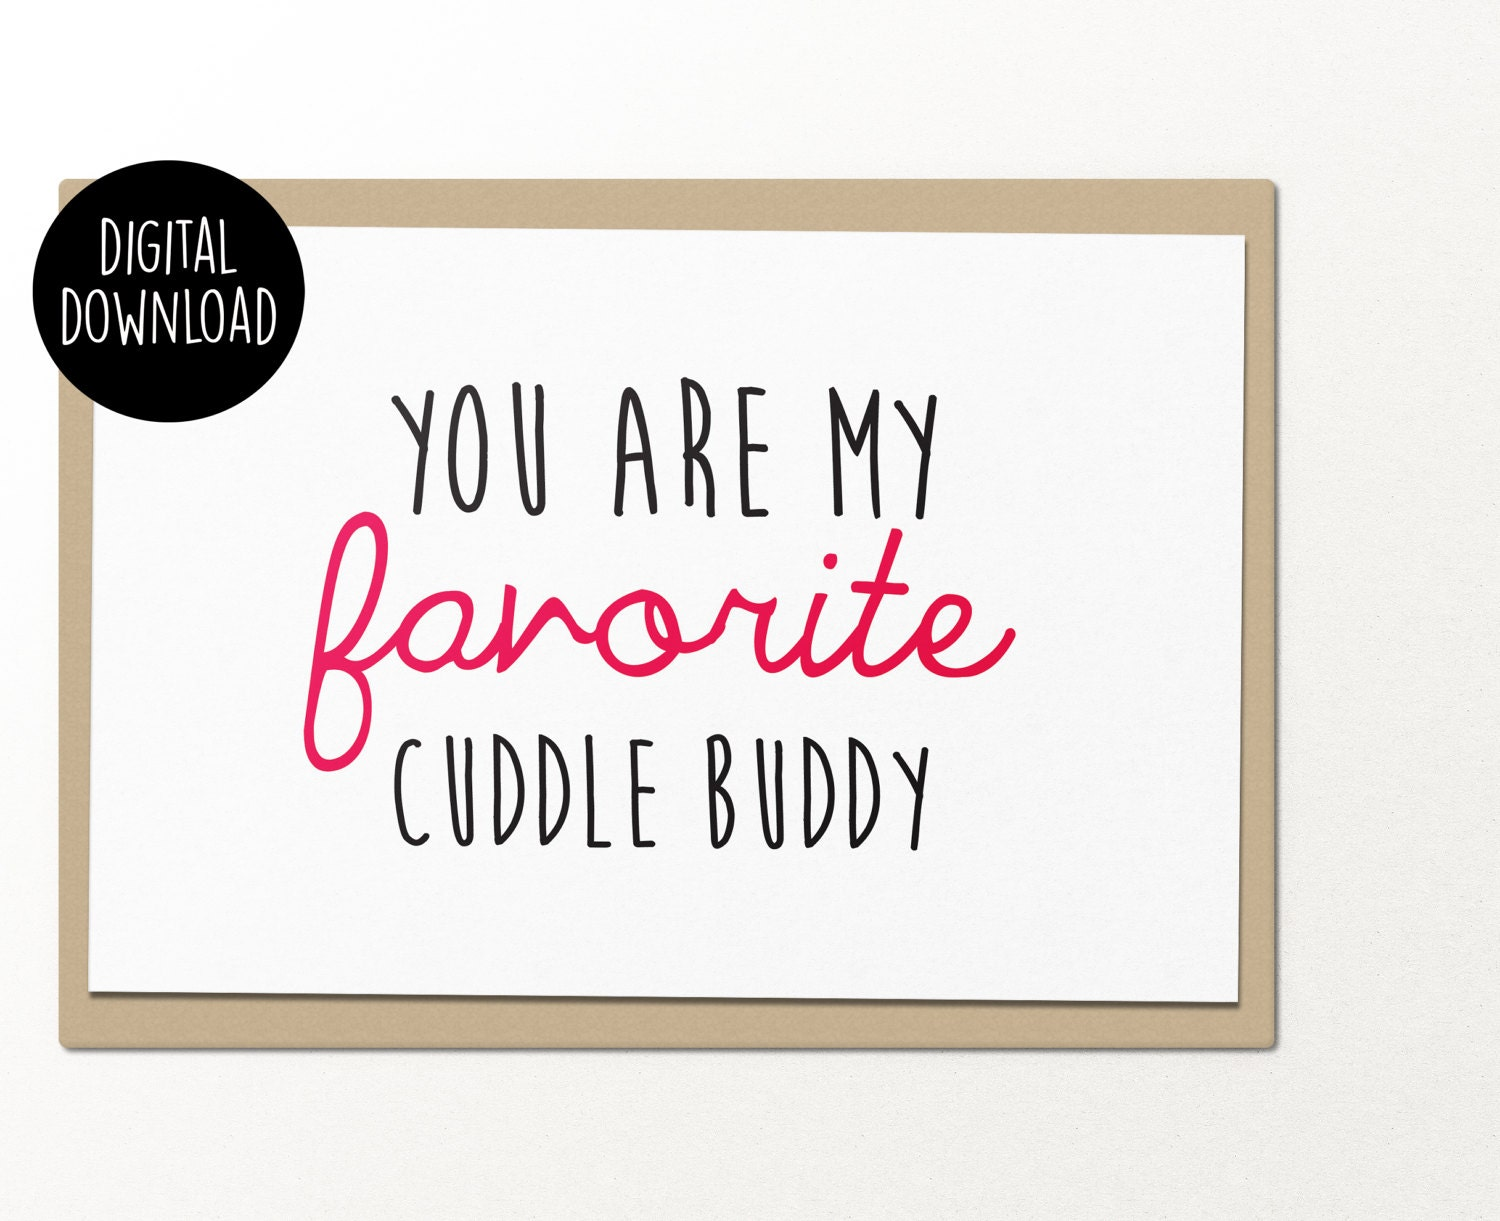 You are my favorite cuddle buddy printable greeting cards you are my favorite cuddle buddy printable greeting cards relationship card m4hsunfo